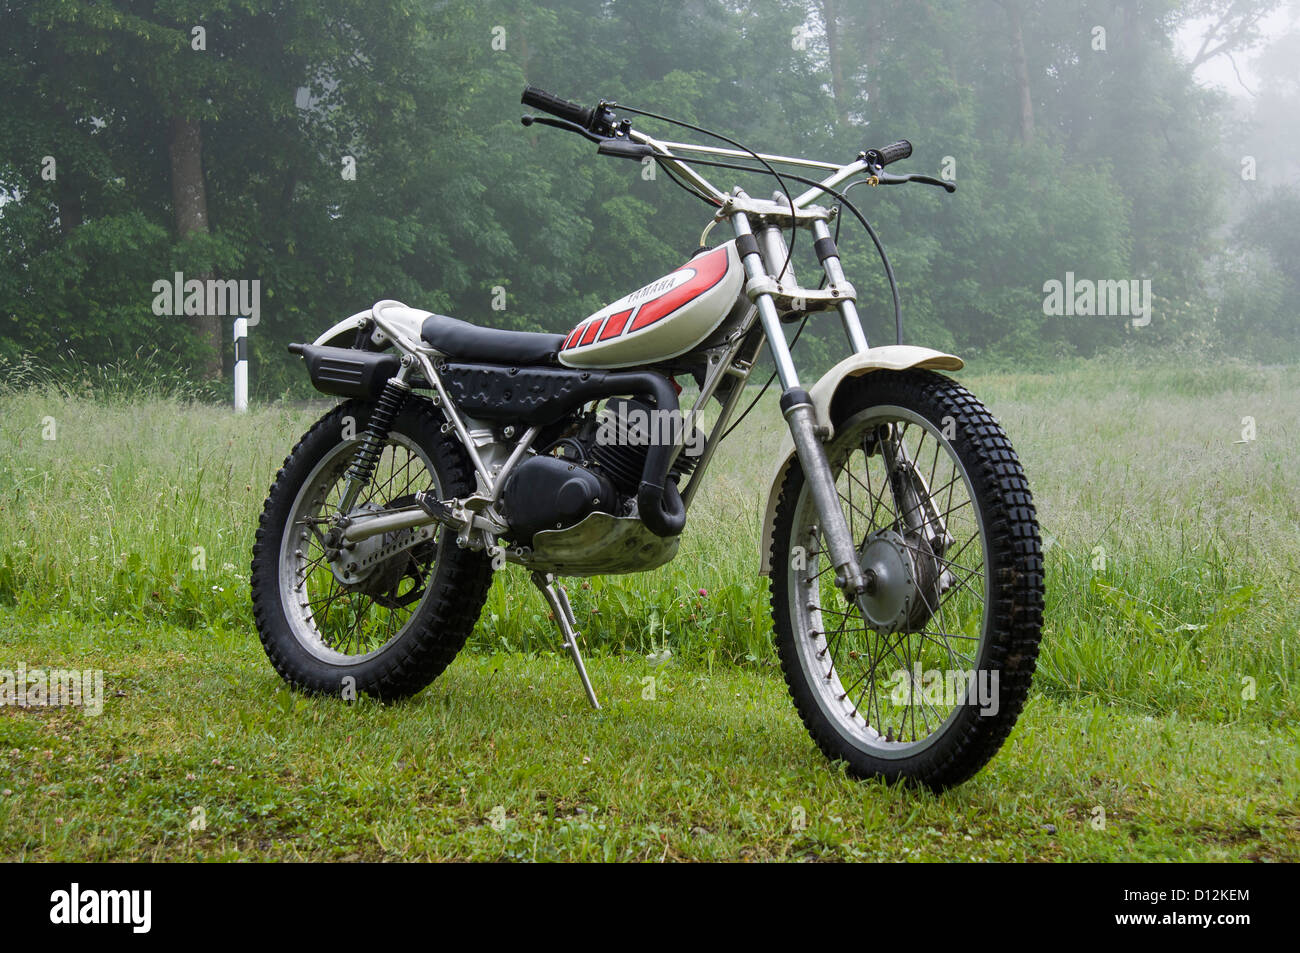 yamaha ty 125 classic trial motorcycle from the 70ies stock photo royalty free image 52304972. Black Bedroom Furniture Sets. Home Design Ideas